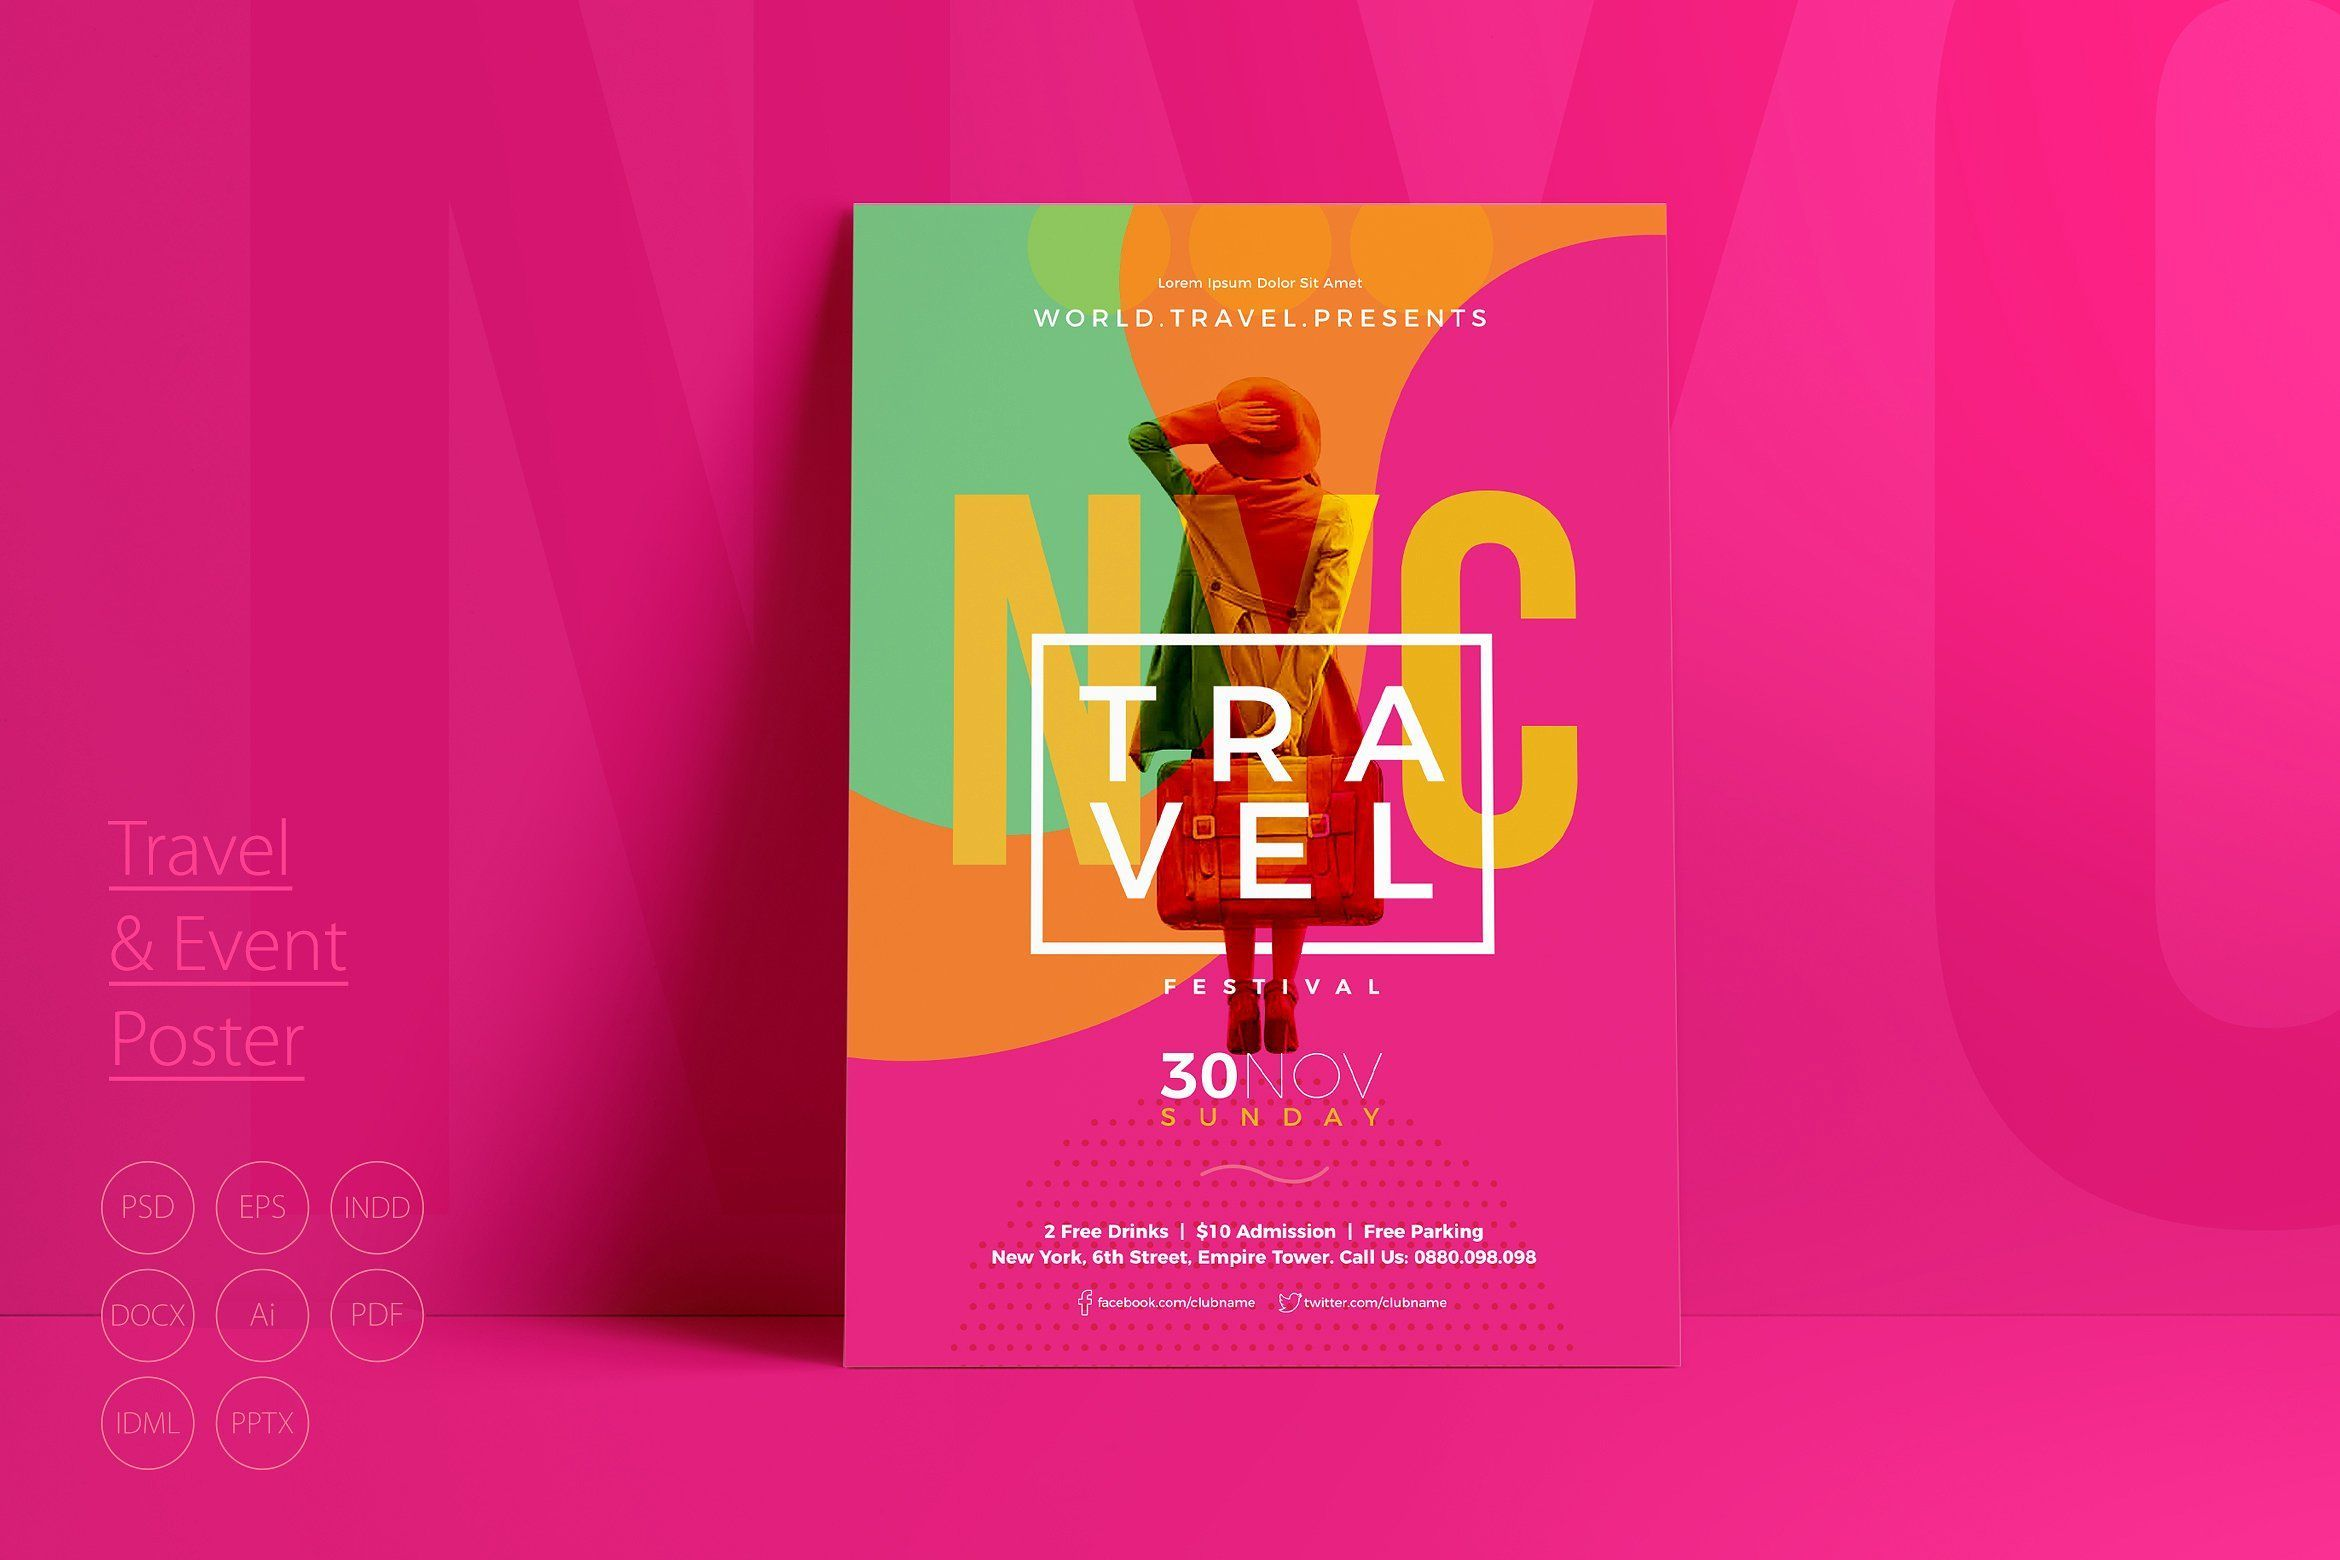 Travel Event Poster Event Poster Event Flyer Templates Event Flyer